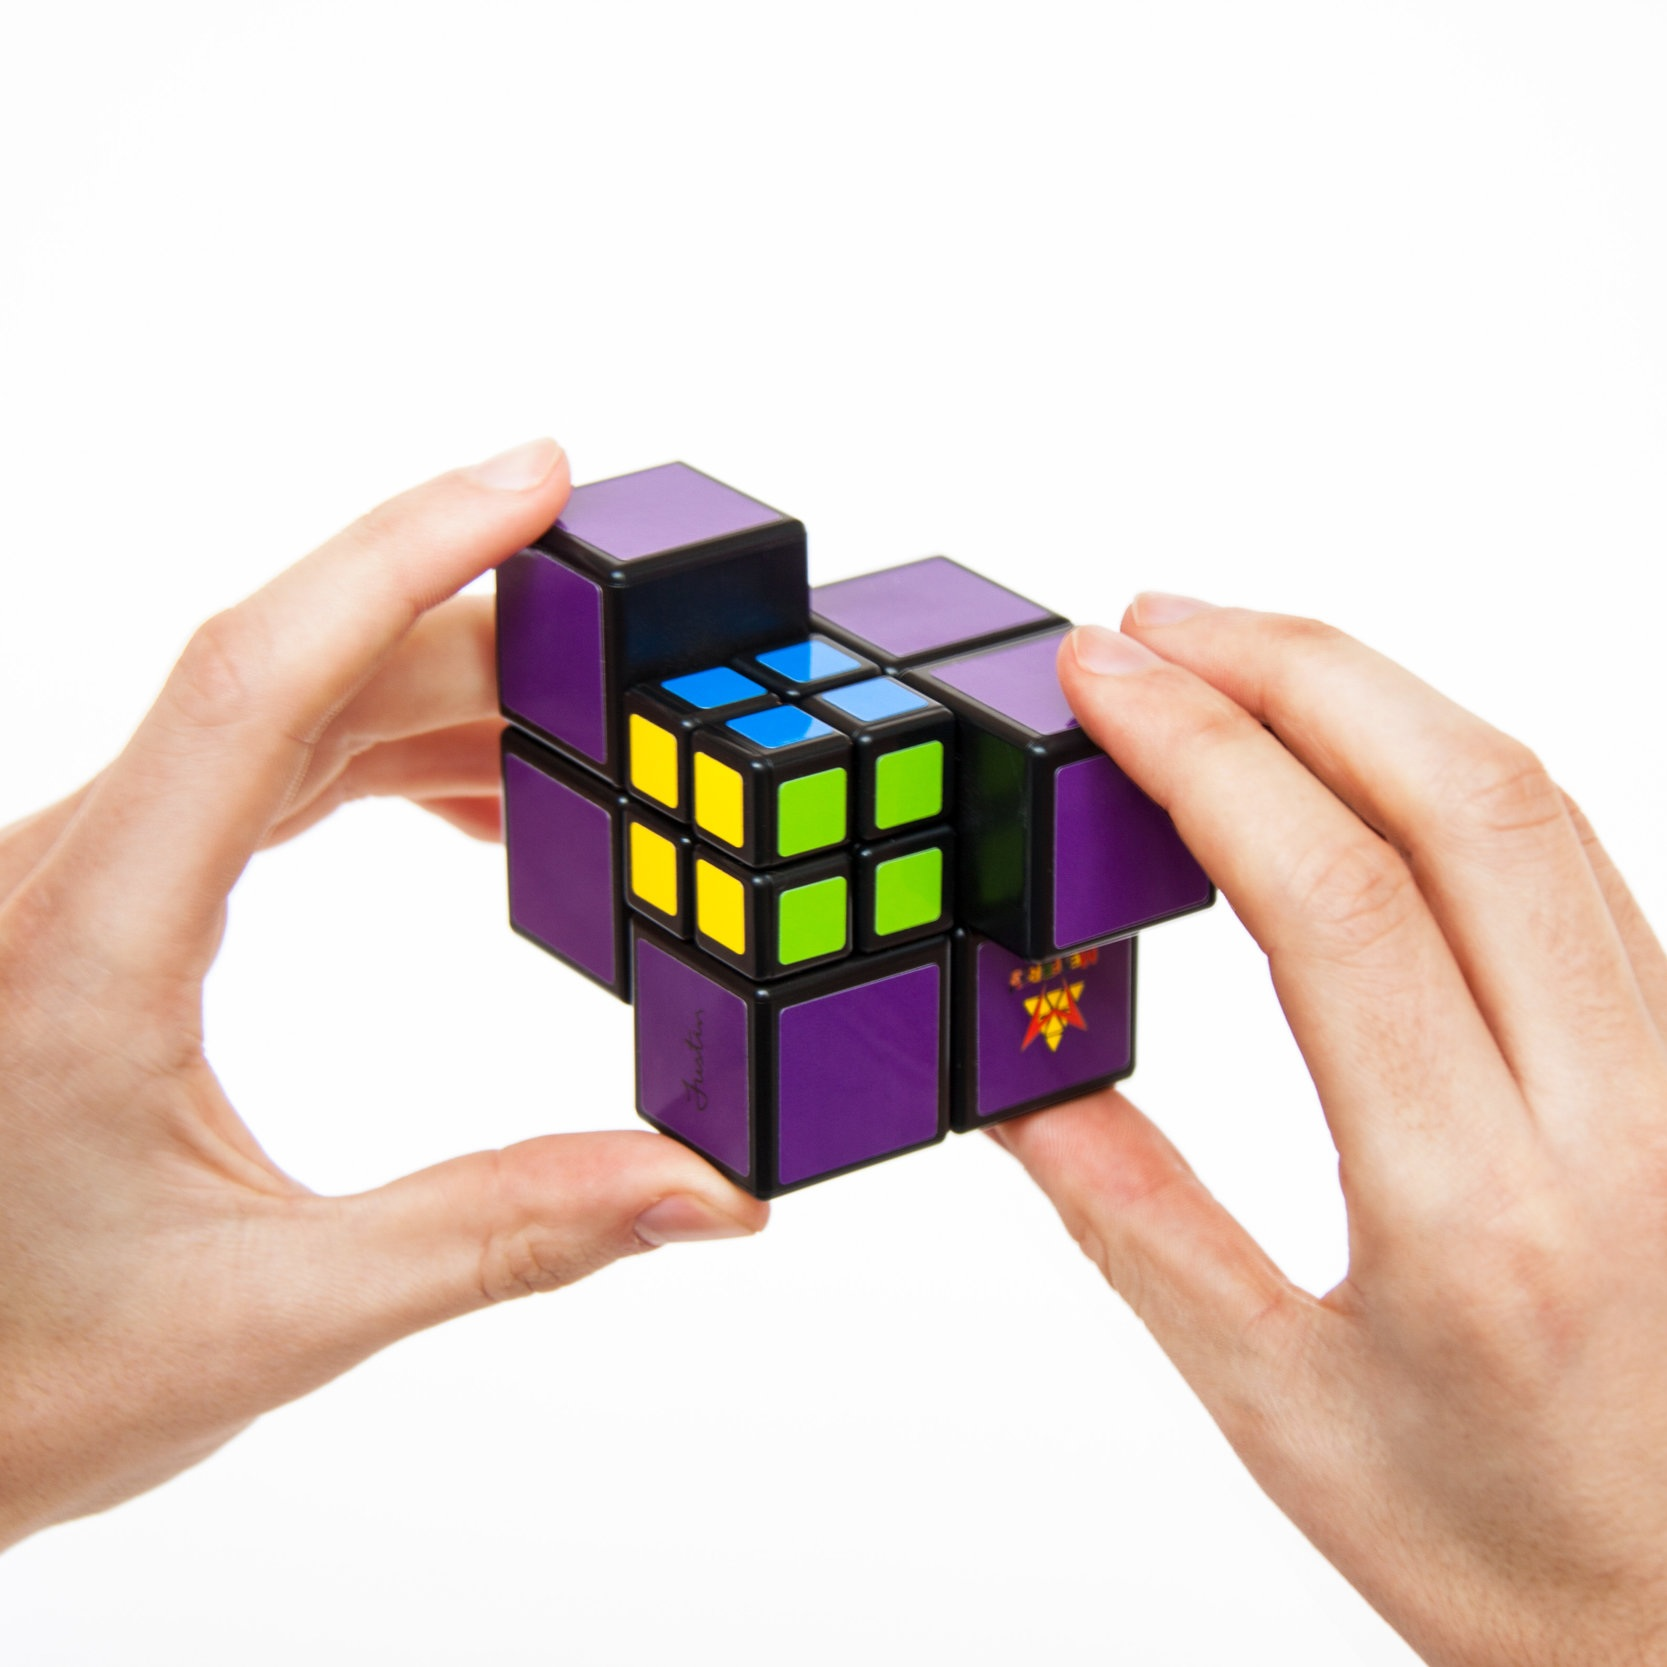 PocketCube-Hands01.jpg